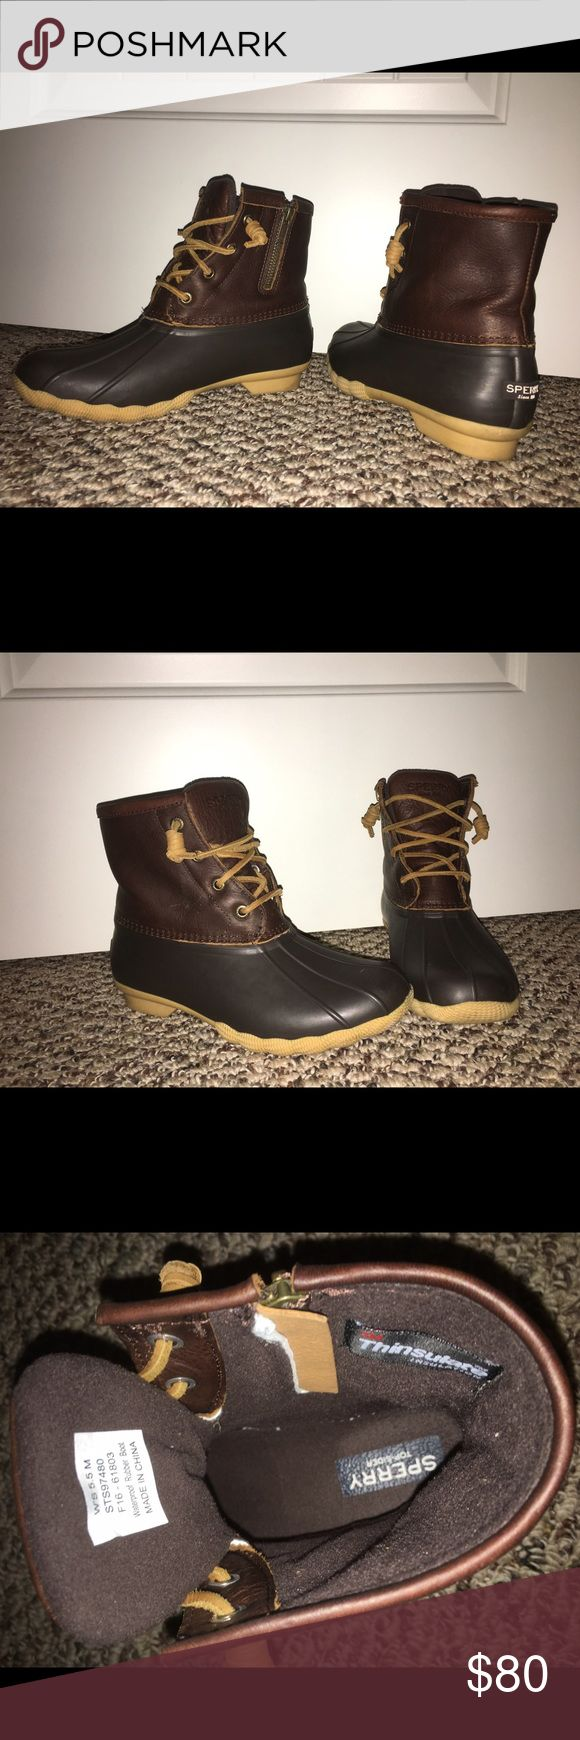 Women's Sperry Saltwater Duck Boot 5.5 M Tan/Dark Brown. Women's size 5.5 M. In great condition. Only worn twice for a short period of time. Very comfortable. They are too small for me. I had to order another size. Sperry Shoes Winter & Rain Boots